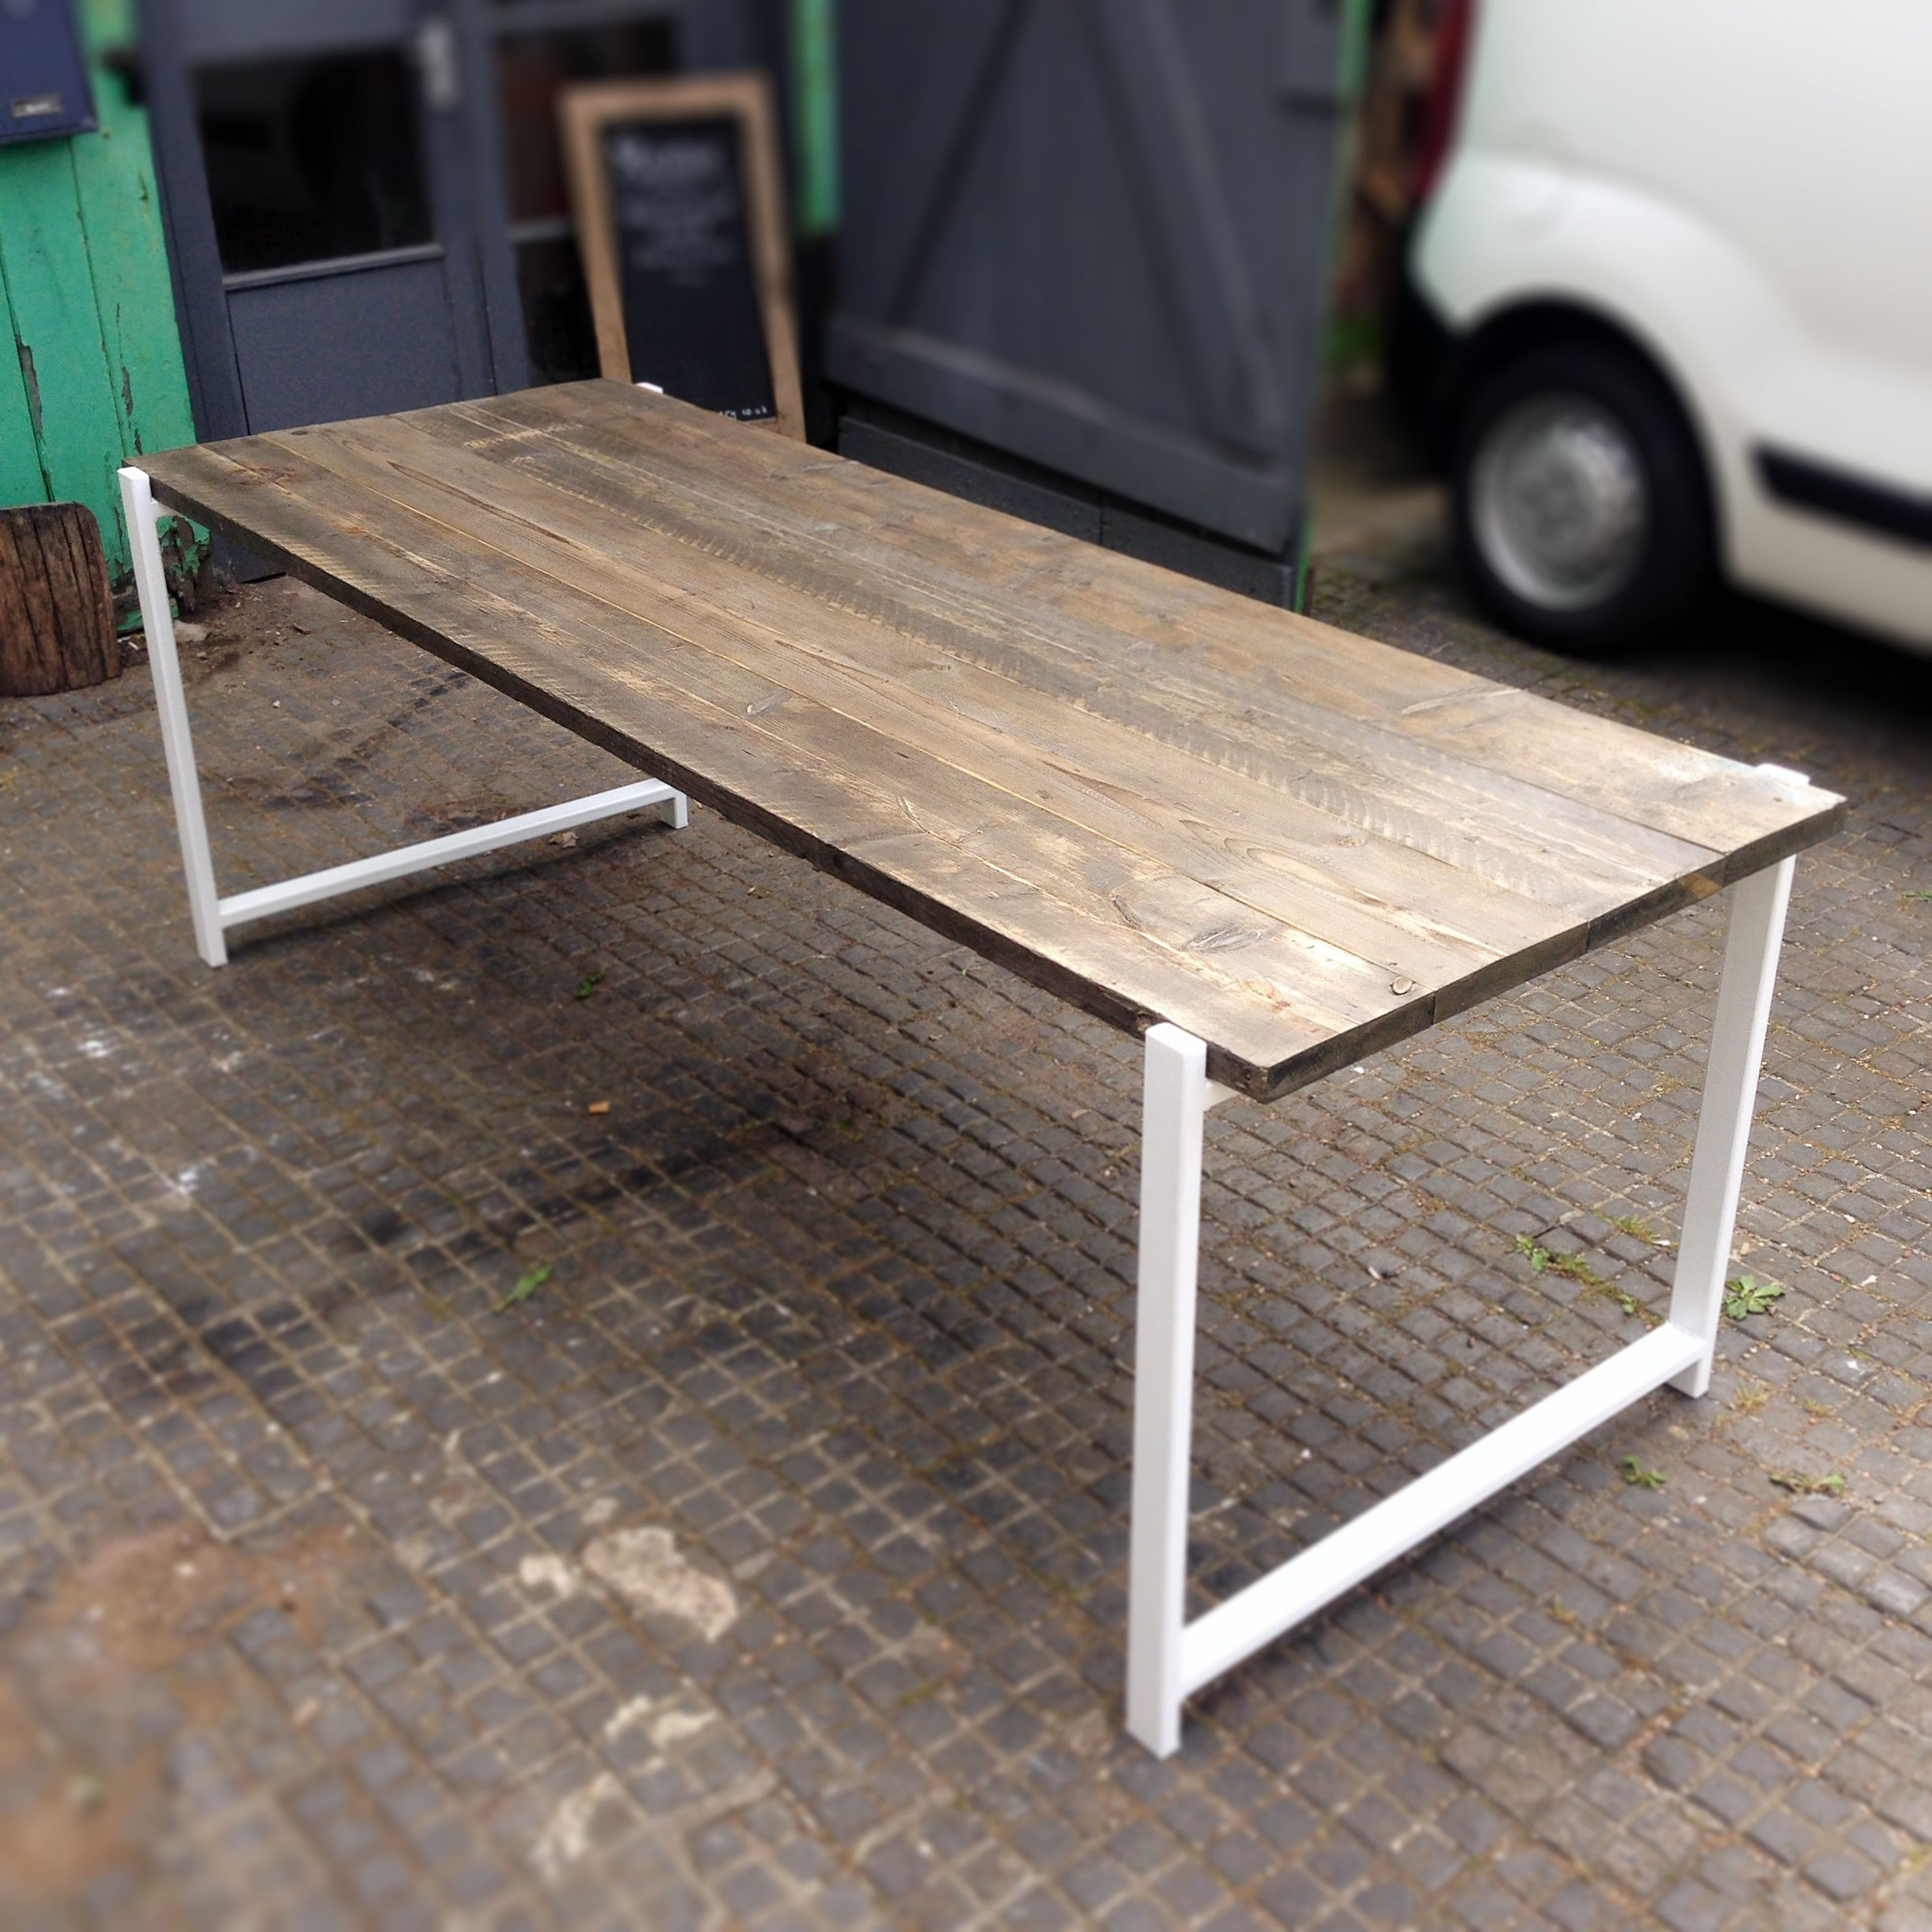 Reclaimed Wood Dining Table With White Box Frame Shops Reclaimed Wood Dining Table And White